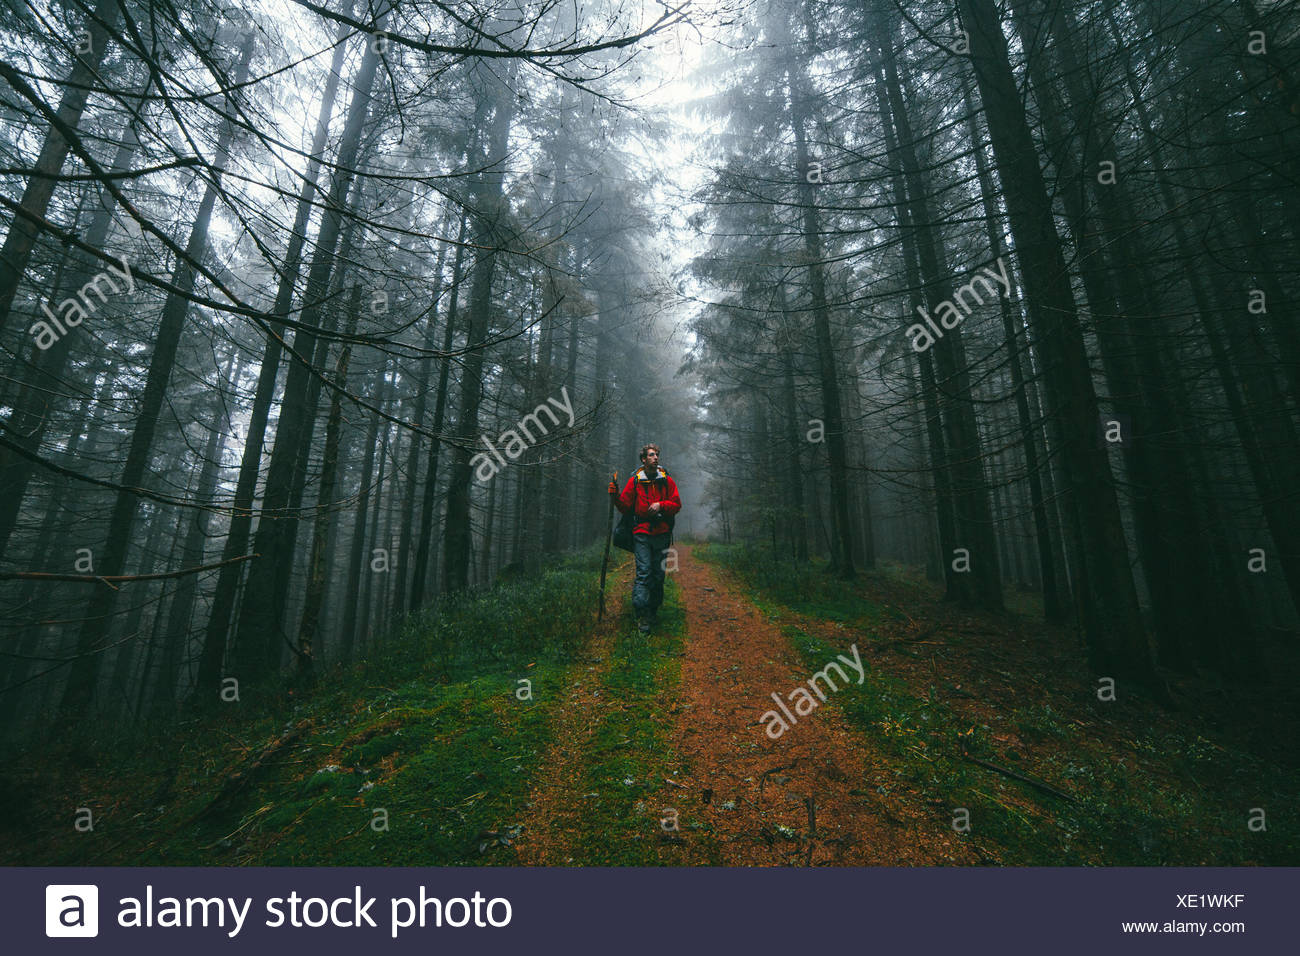 Hiker in forest - Stock Image